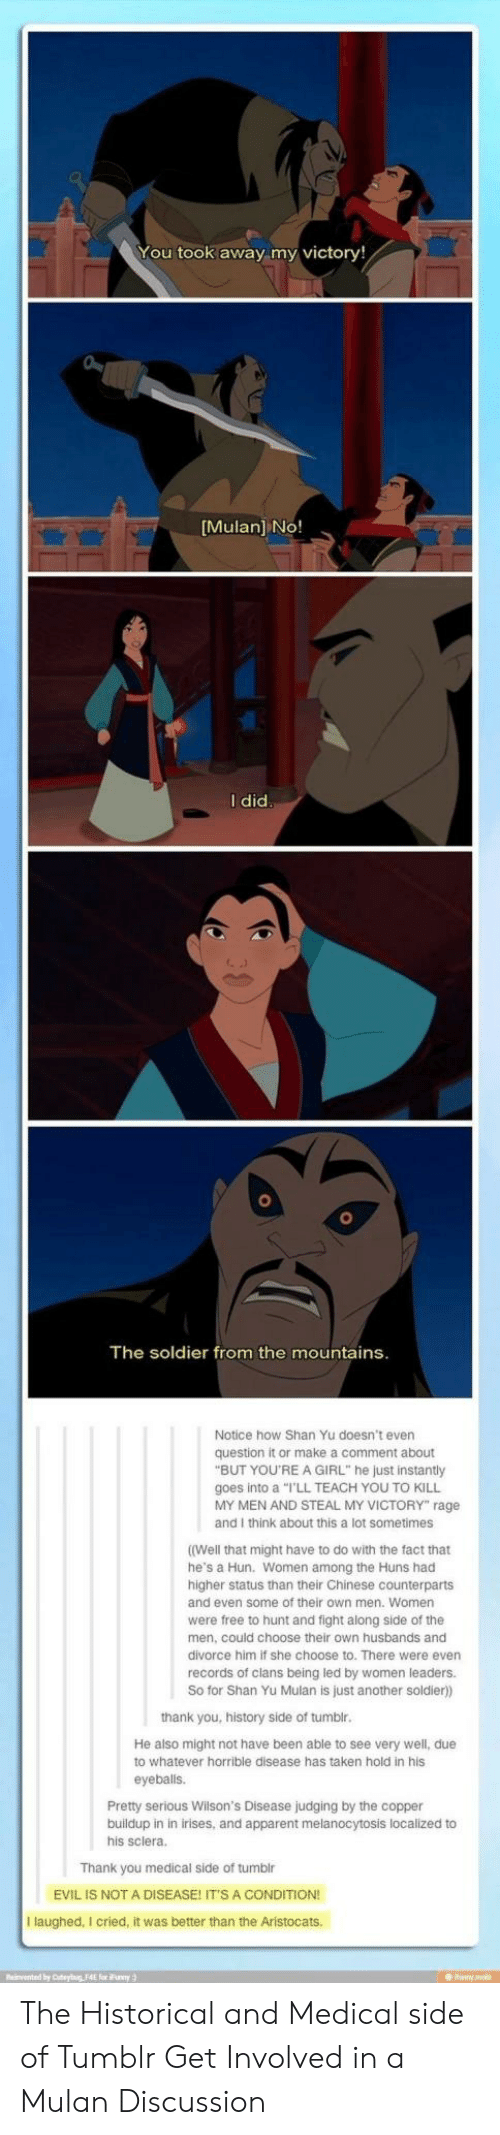 "Mulan, Taken, and Tumblr: You took away my victory!  Mulan] NO!  I did  The soldier from the mountains  Notice how Shan Yu doesn't even  question it or make a comment about  ""BUT YOU'RE A GIRL"" he just instantly  goes into a ""I'LL TEACH YOU TO KILL  MY MEN AND STEAL MY VICTORY"" rage  and I think about this a lot sometimes  (Well that might have to do with the fact that  he's a Hun. Women among the Huns had  higher status than their Chinese counterparts  and even some of their own men. Women  were free to hunt and fight along side of the  men, could choose their own husbands and  divorce him if she choose to. There were even  records of clans being led by women leaders.  So for Shan Yu Mulan is just another soldier)  thank you, history side of tumbl  He also might not have been able to see very well, due  to whatever horrible disease has taken hold in his  eyeballs.  Pretty serious Wilson's Disease judging by the copper  buildup in in irises, and apparent melanocytosis localized to  his sclera.  Thank you medical side of tumblr  EVIL IS NOT A DISEASE! IT'S A CONDITION  I laughed, I cried, it was better than the Aristocats.  Reinvented by Coteyig F4E for Funy The Historical and Medical side of Tumblr Get Involved in a Mulan Discussion"